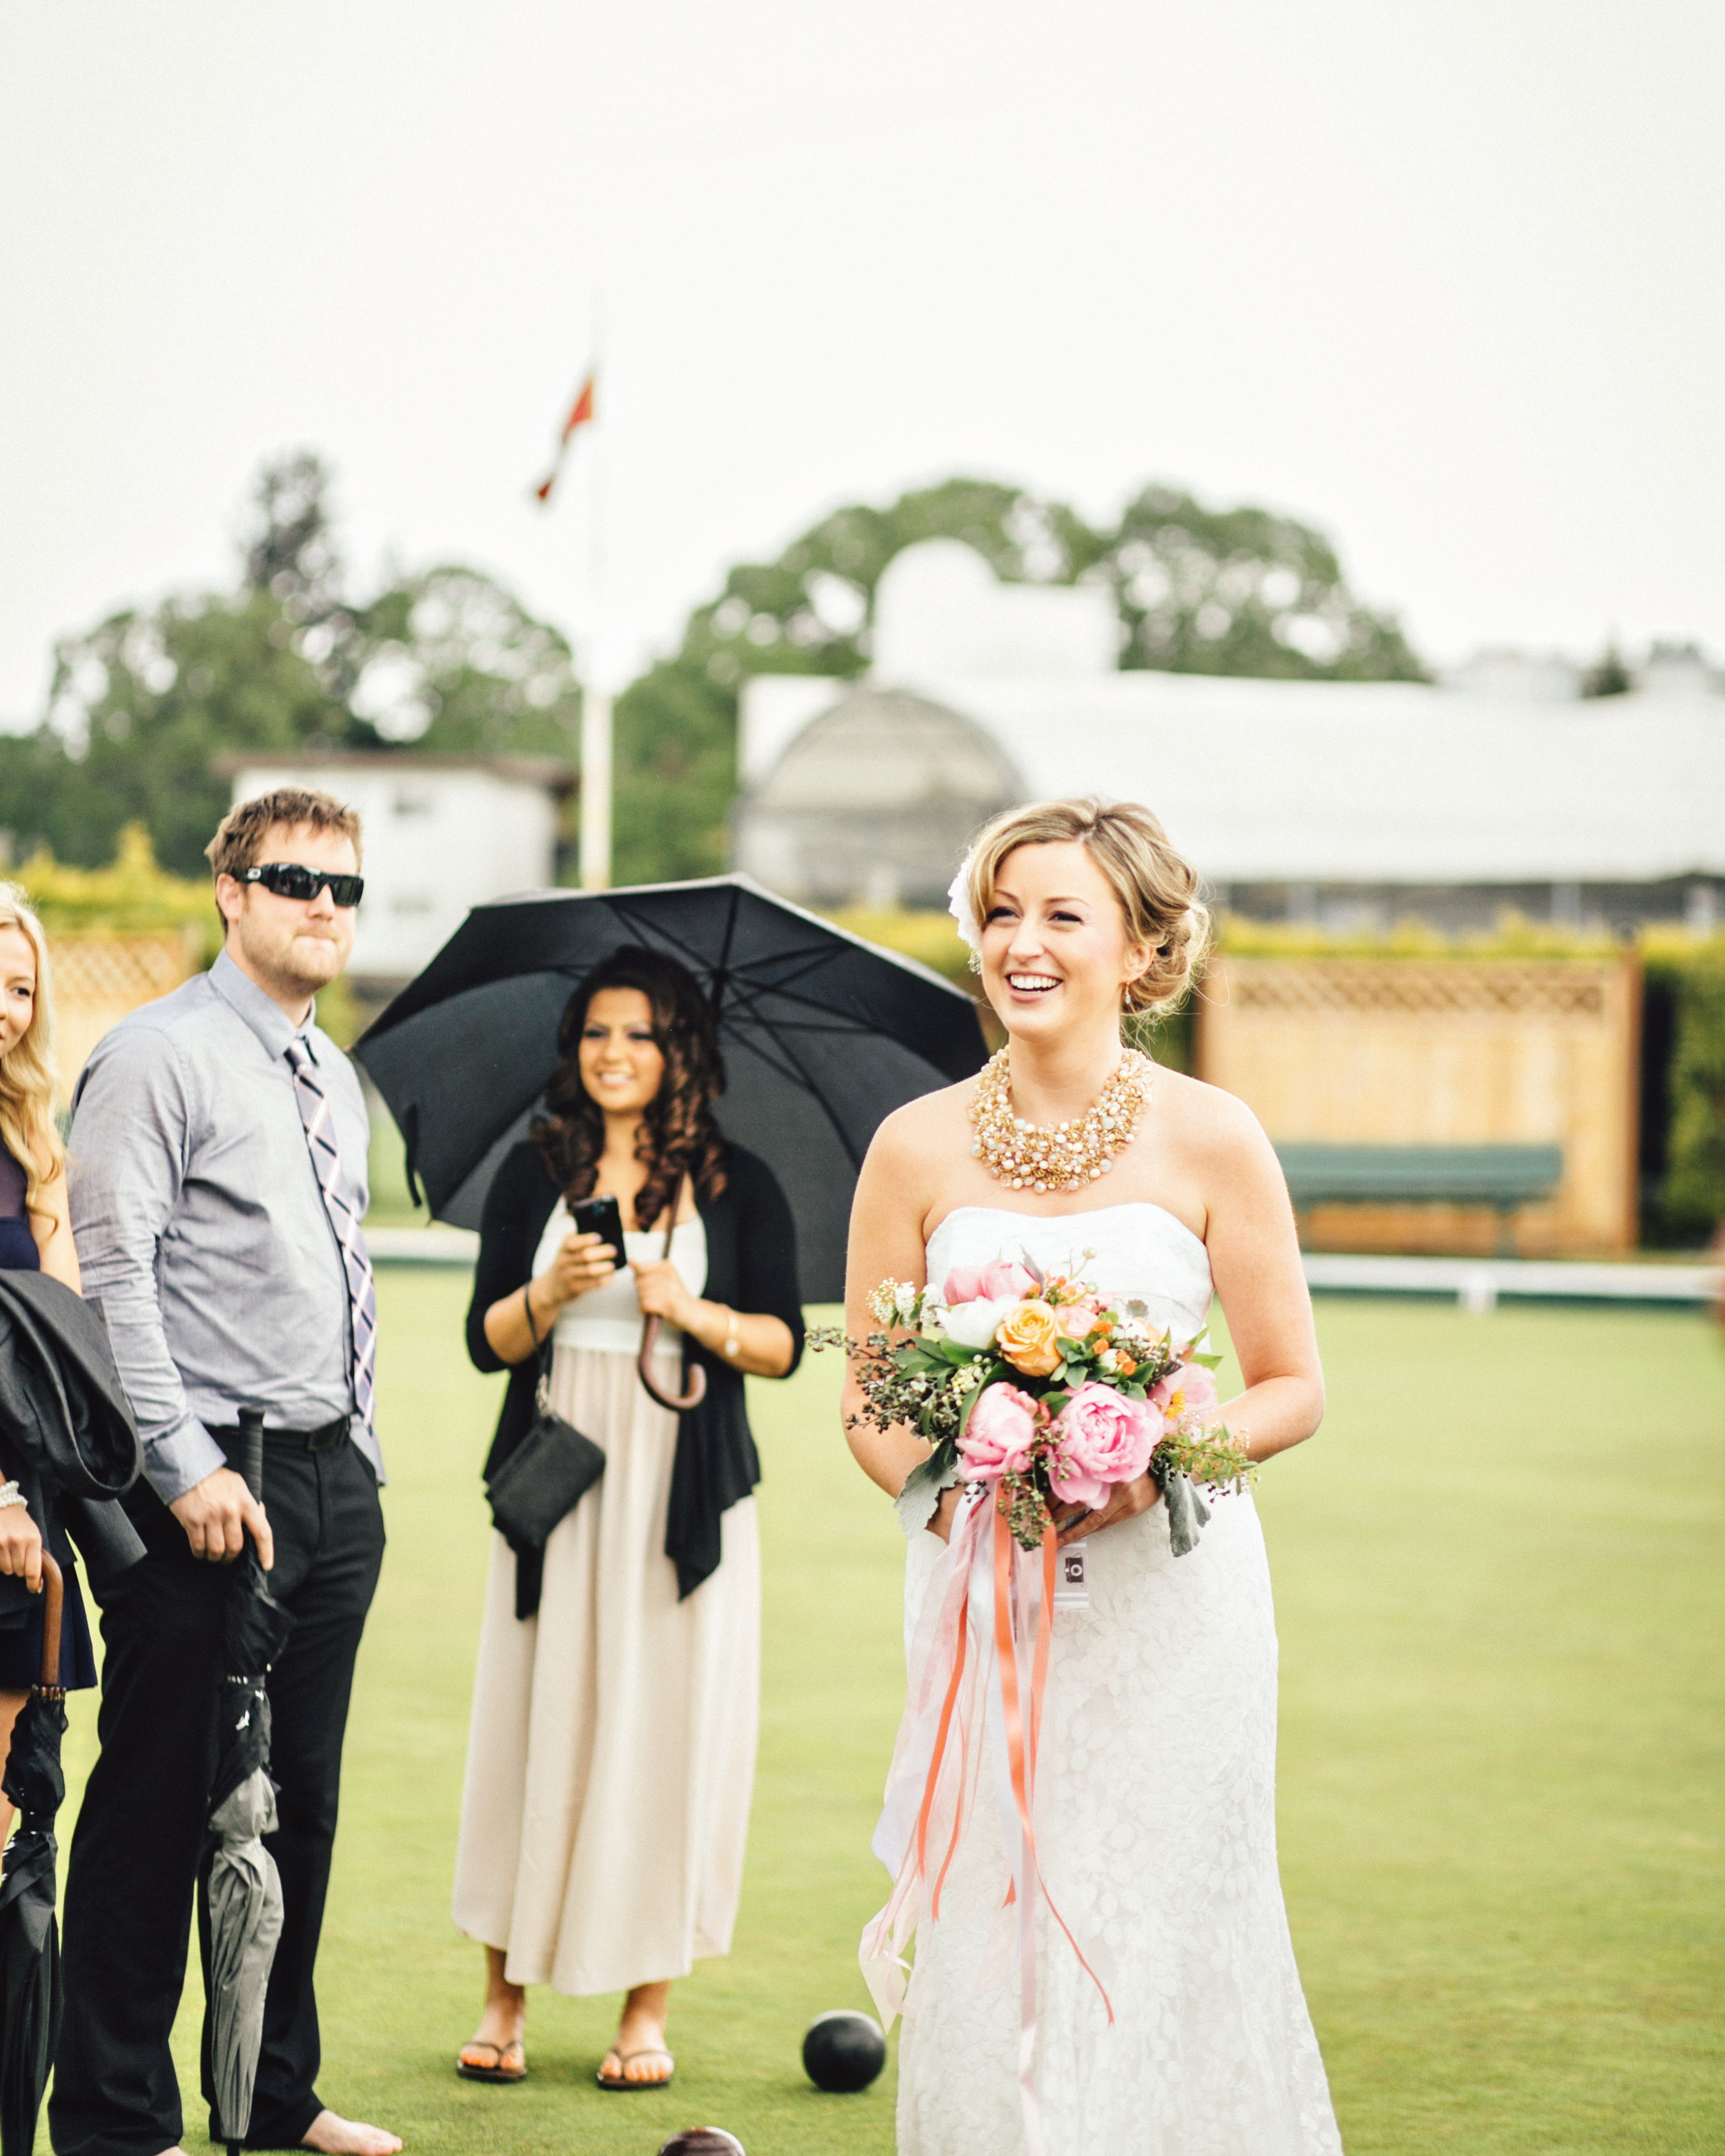 Wedding Photography by taylor roades